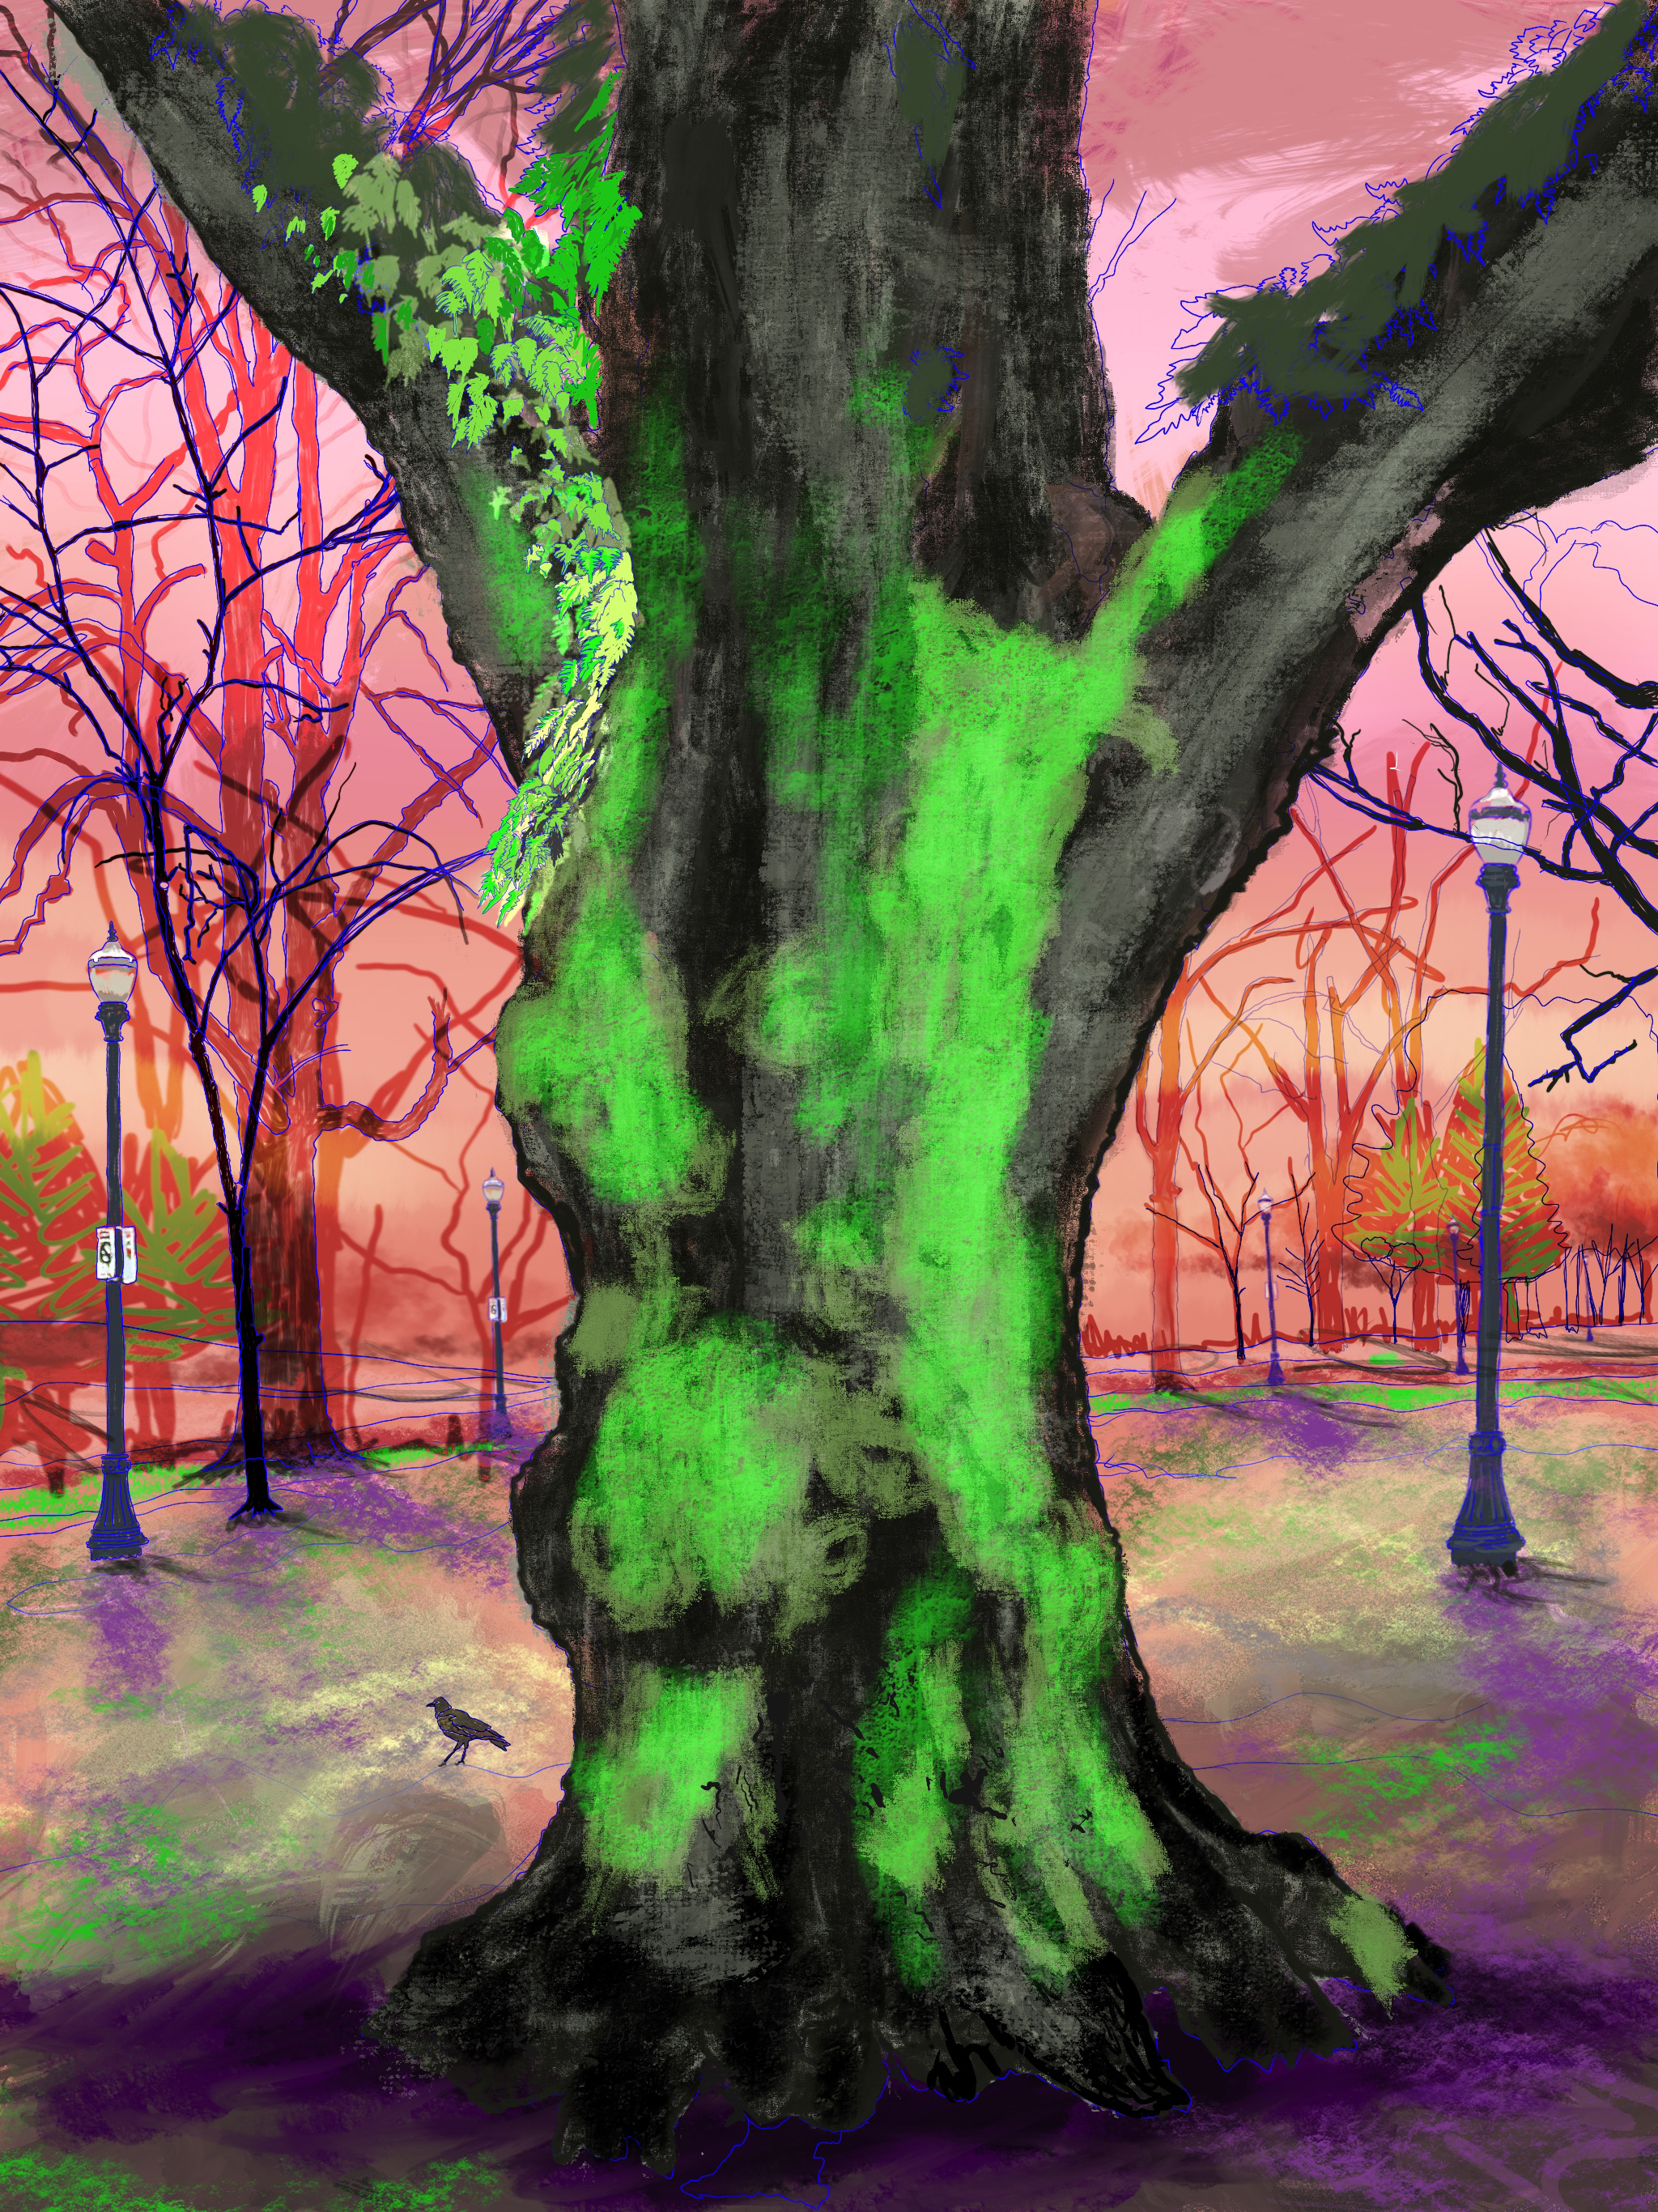 """Giant Moss Covered Tree, 2, North Park Blocks. Portland, OR   19""""x13"""", (48.26x33.02cm) Dimensions Variable   Electronics Painting, iPad, Procreate, © 2017"""